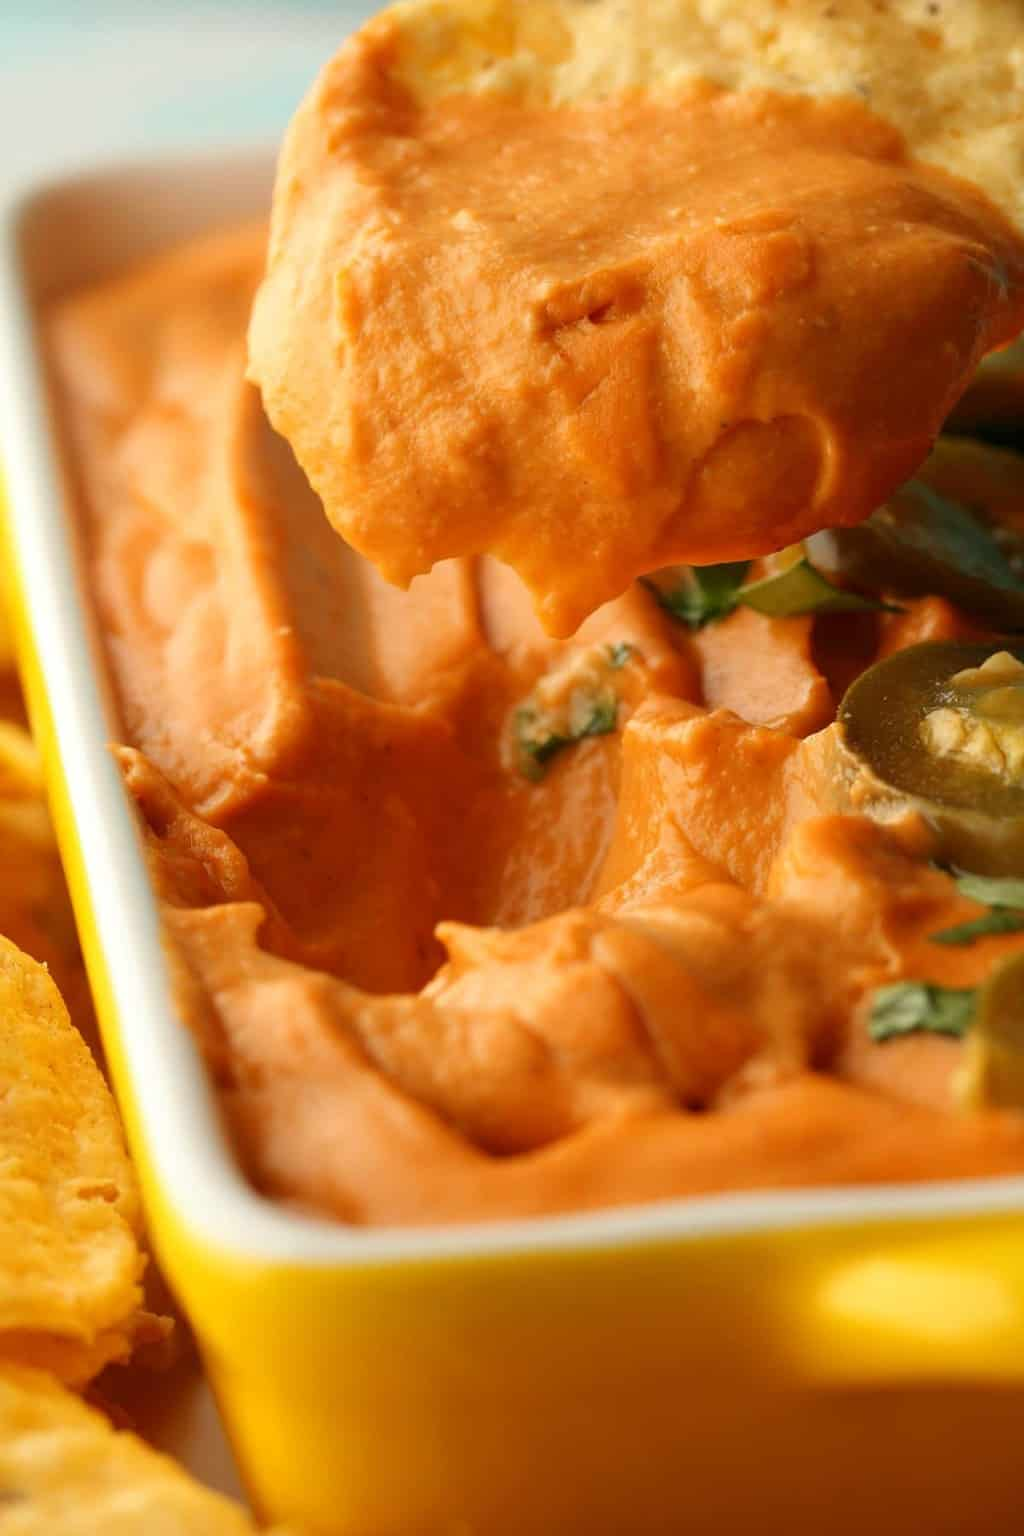 A corn chip dipping into a yellow and white serving dish of vegan queso.